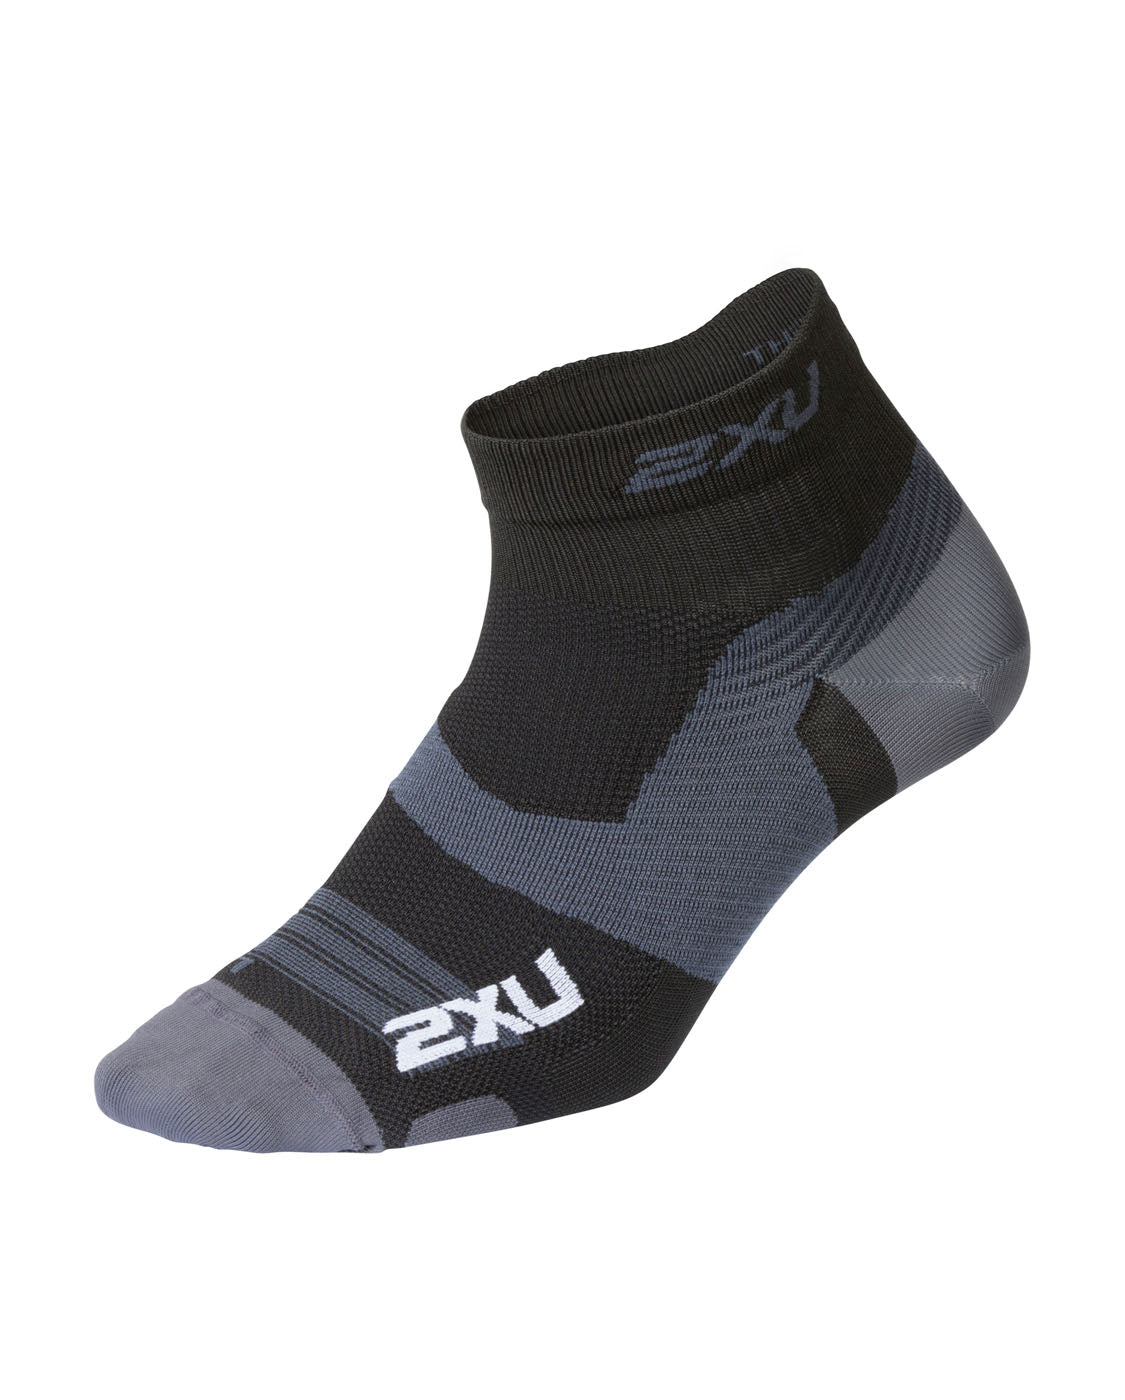 2XU VECTR Ultralight 1/4 Crew Socks